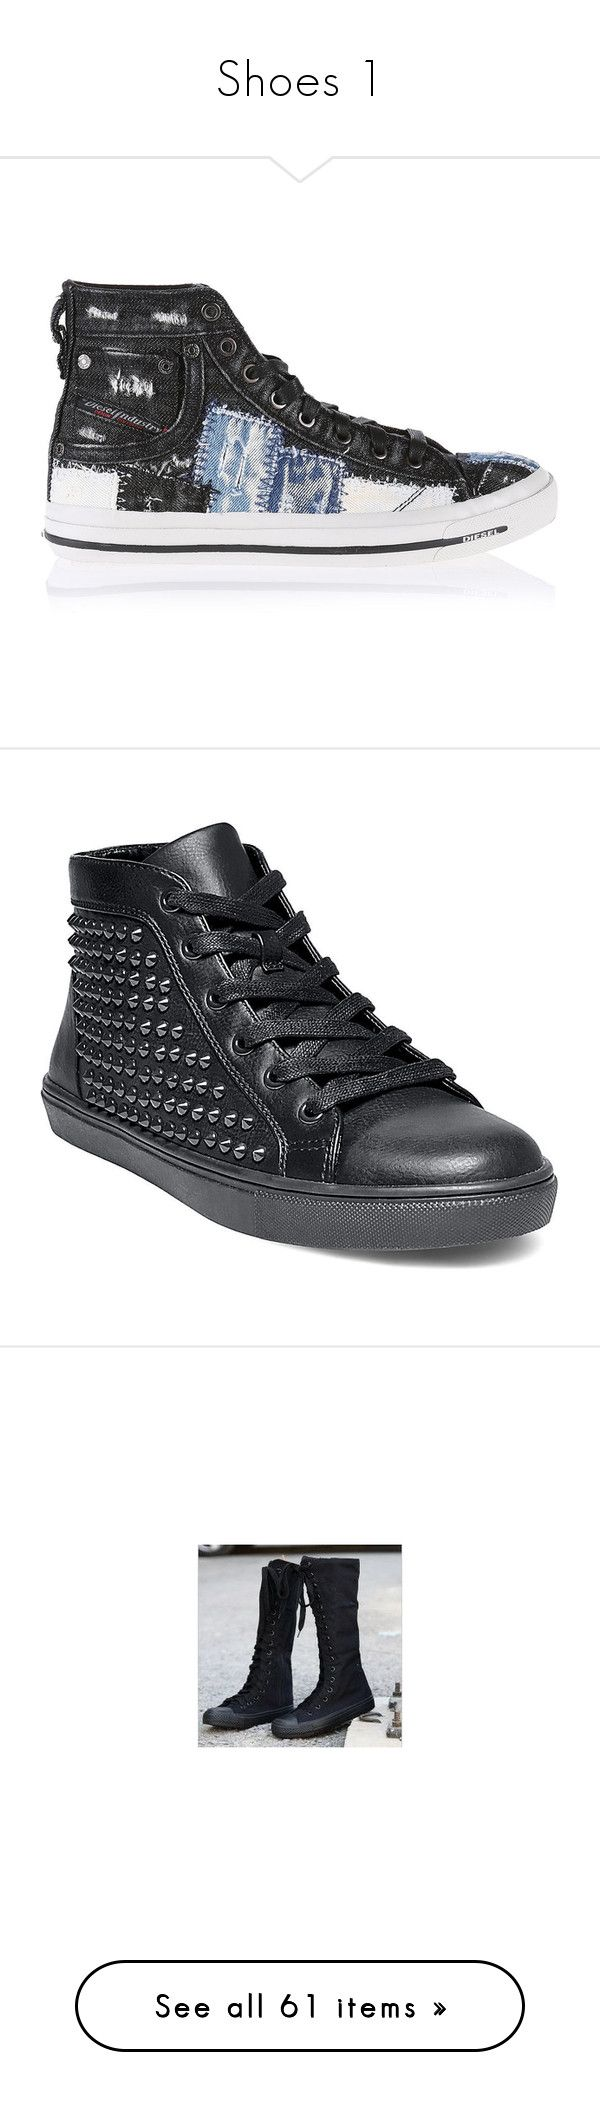 """""""Shoes 1"""" by xxxxtherazorbladesreliefxxxx ❤ liked on Polyvore featuring shoes, sneakers, black denim, casual shoes, women, black laced shoes, diesel trainers, diesel footwear, black lace up sneakers and lace up shoes"""